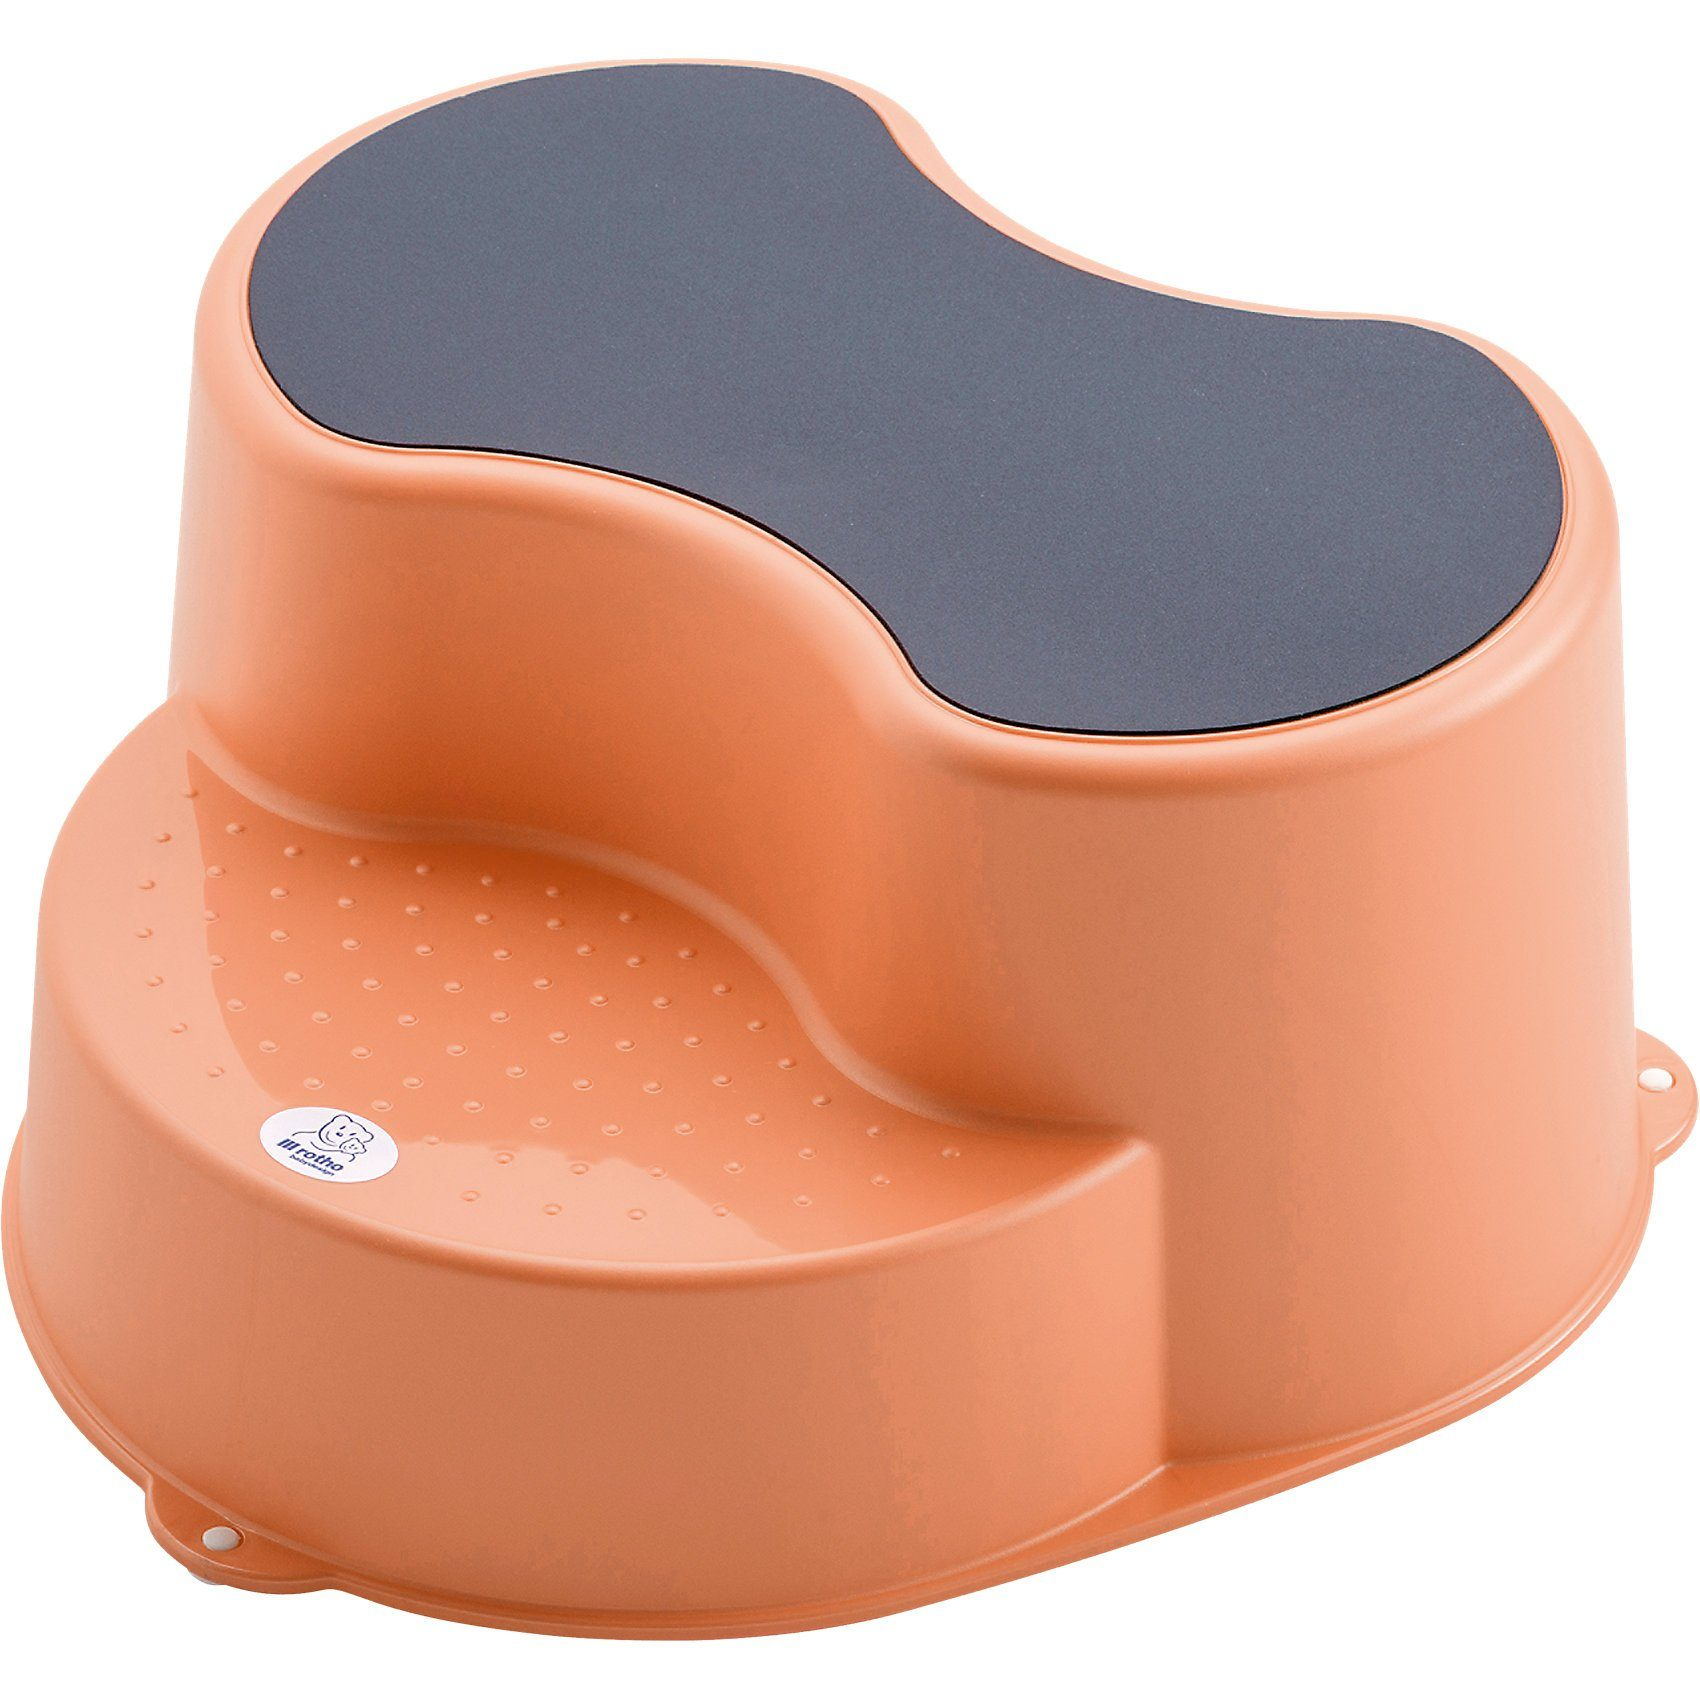 Rotho Babydesign Trittschemel Top, peach